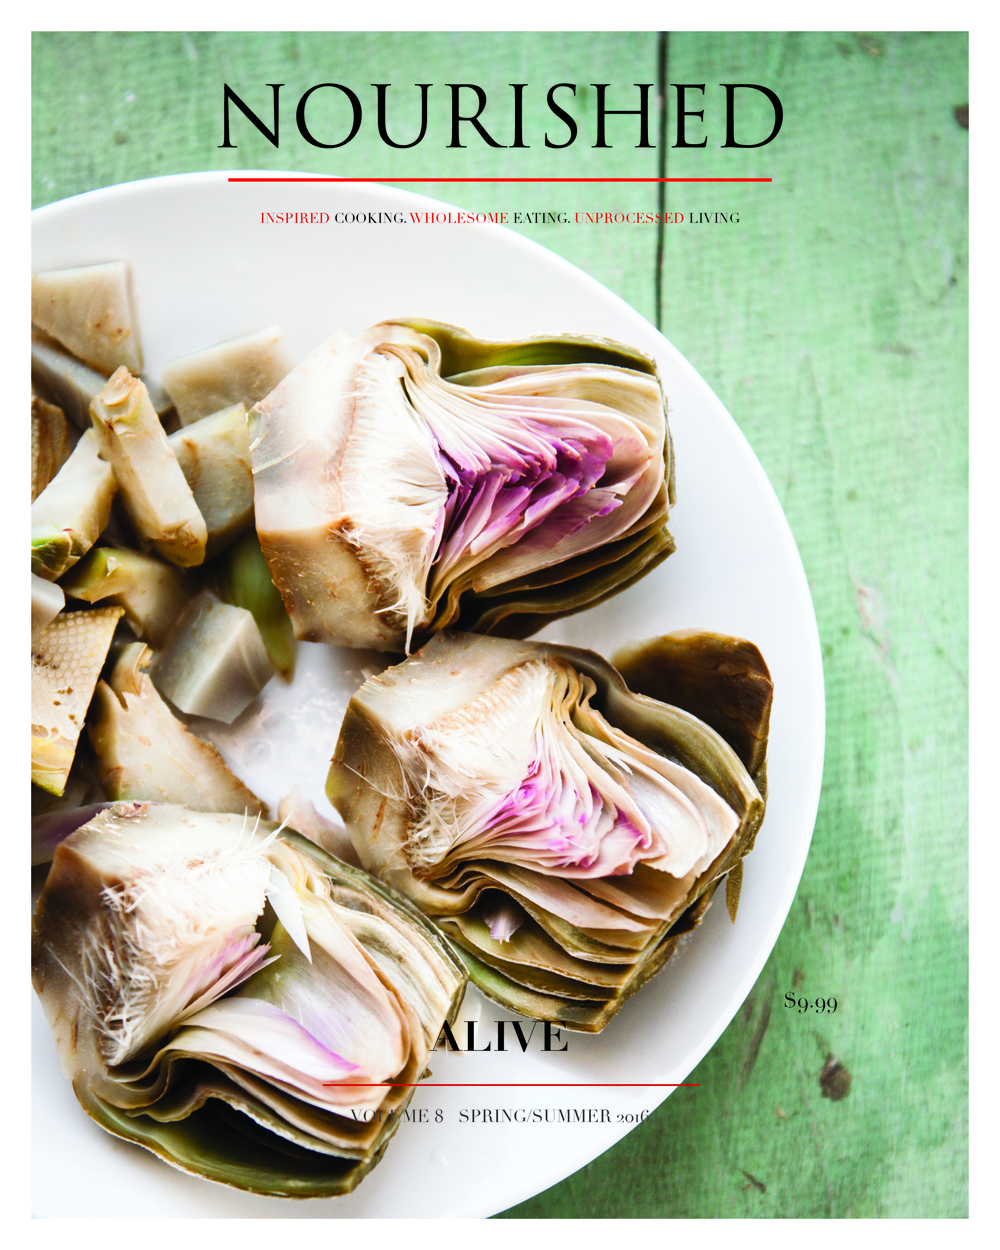 nourished-spring/summer-2016-issue-cove